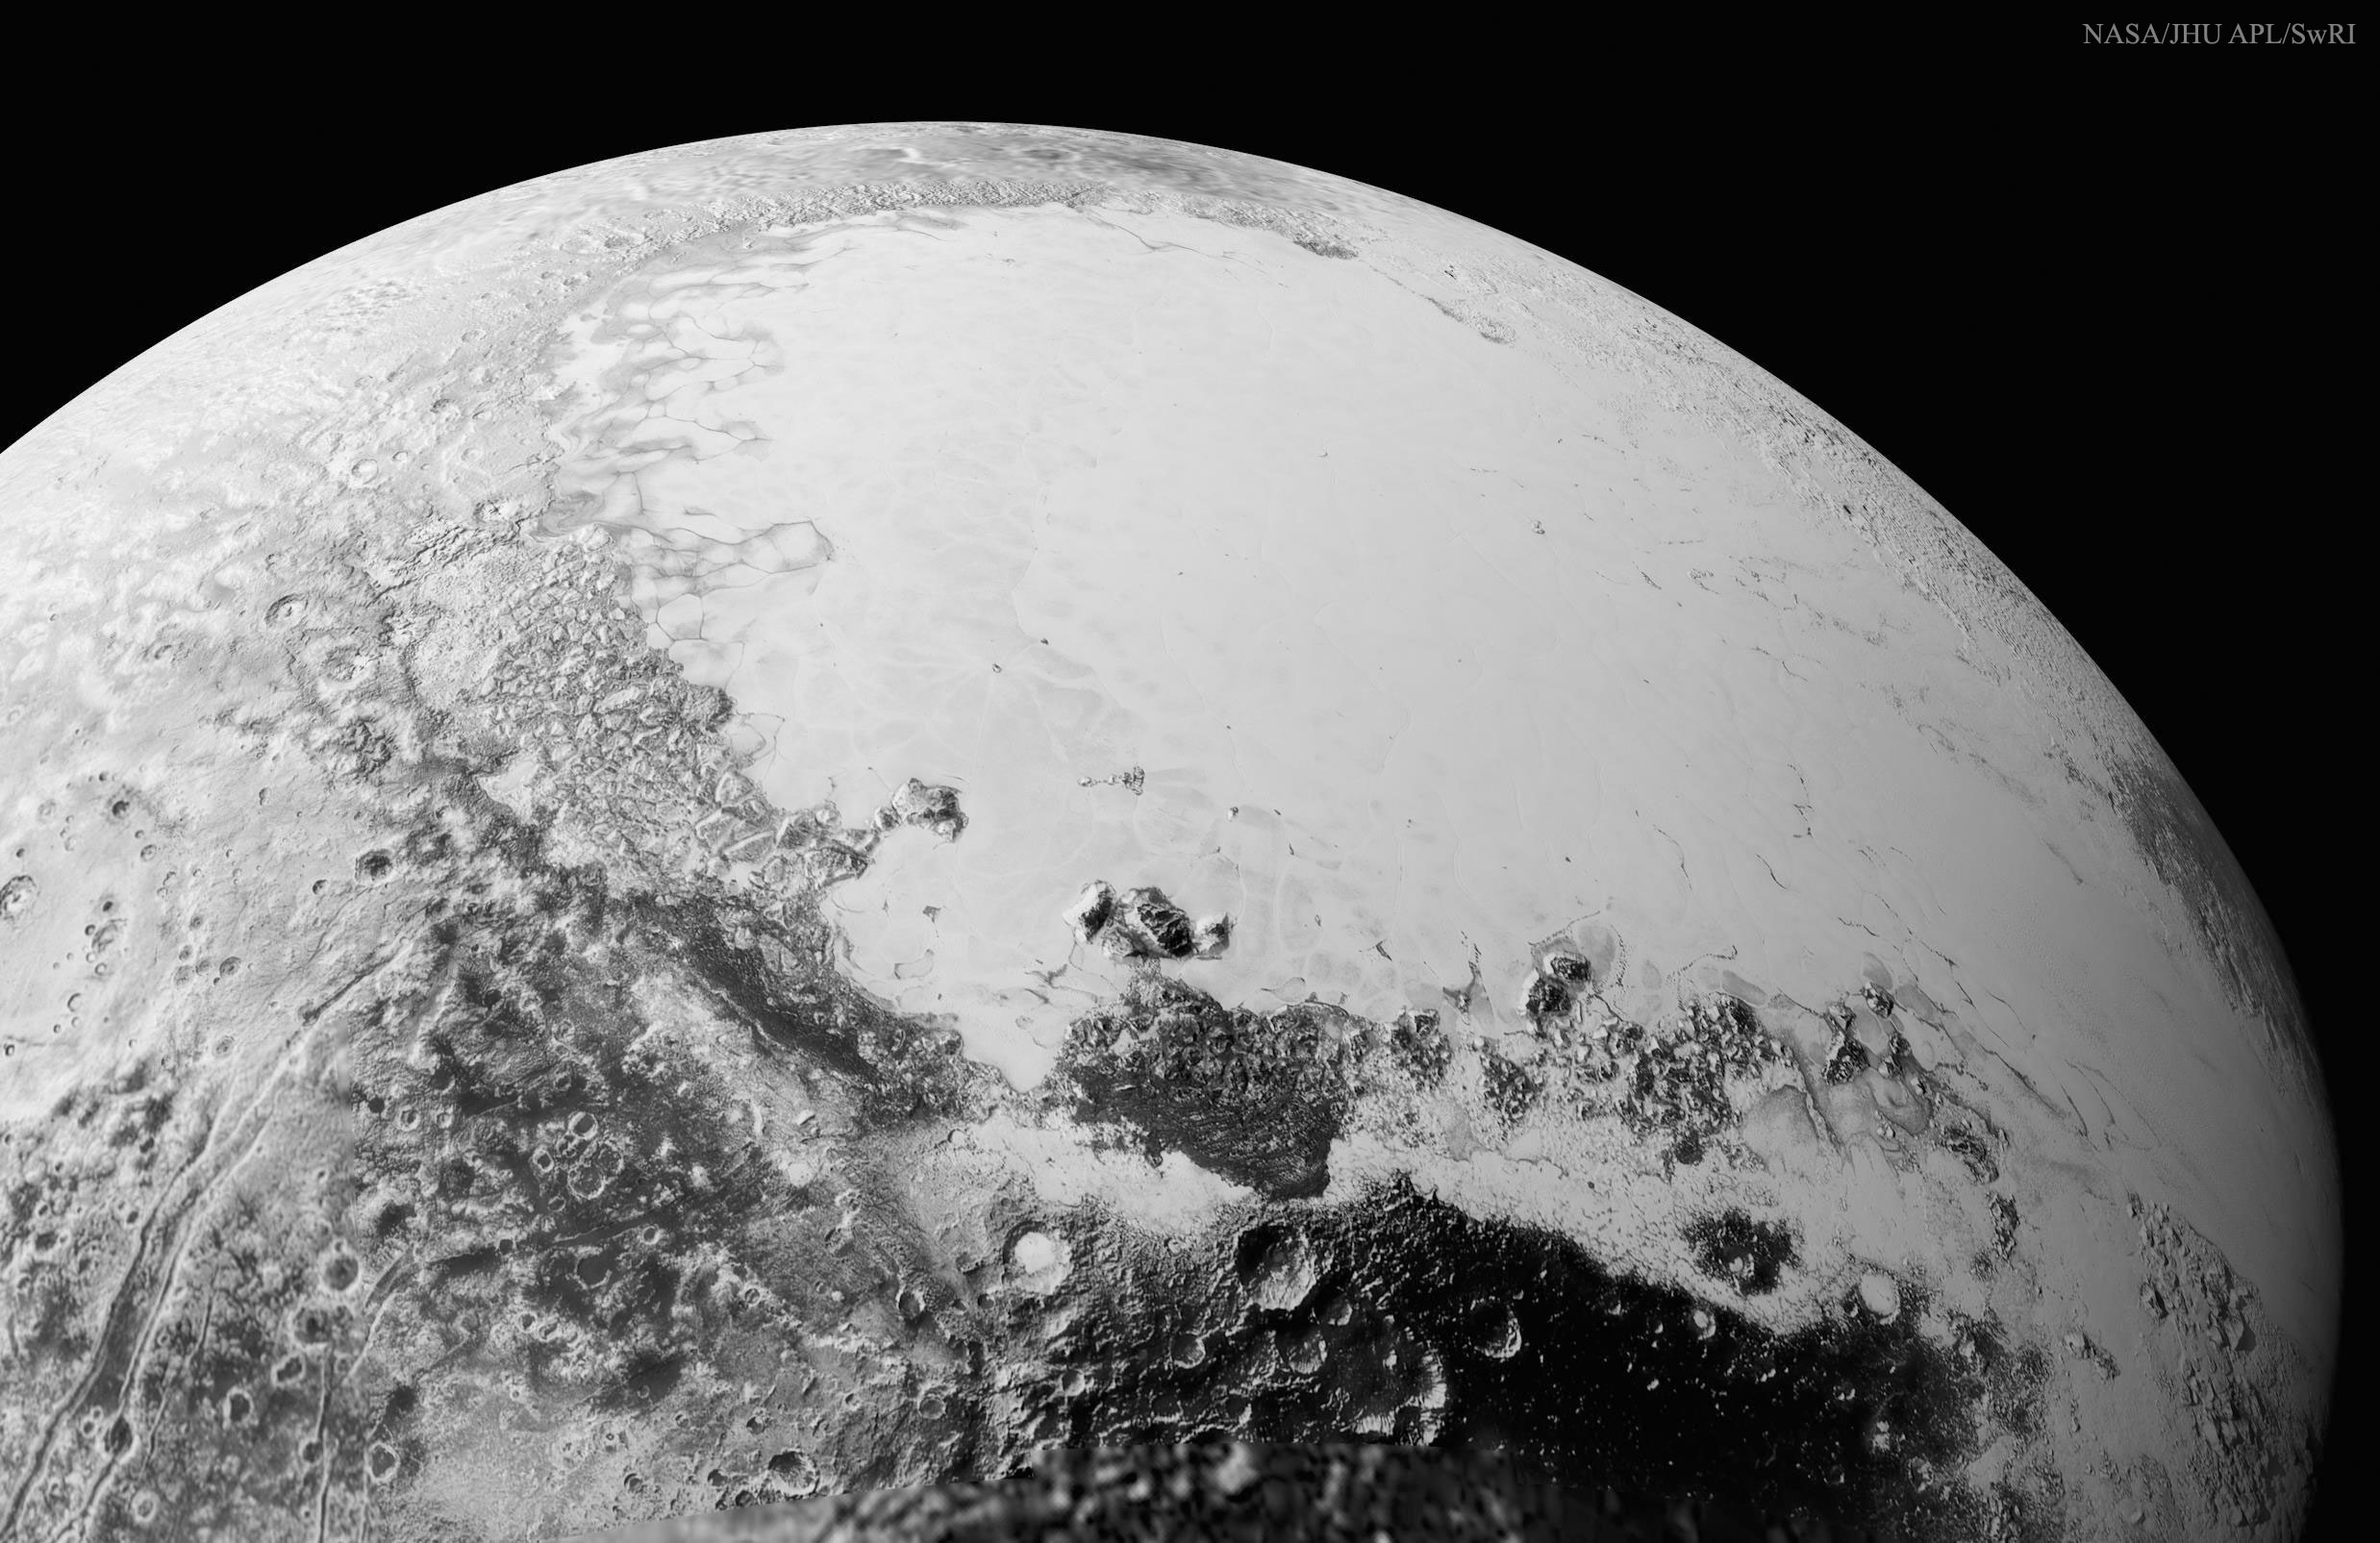 2015 September 14 - Pluto from above Cthulhu Regio